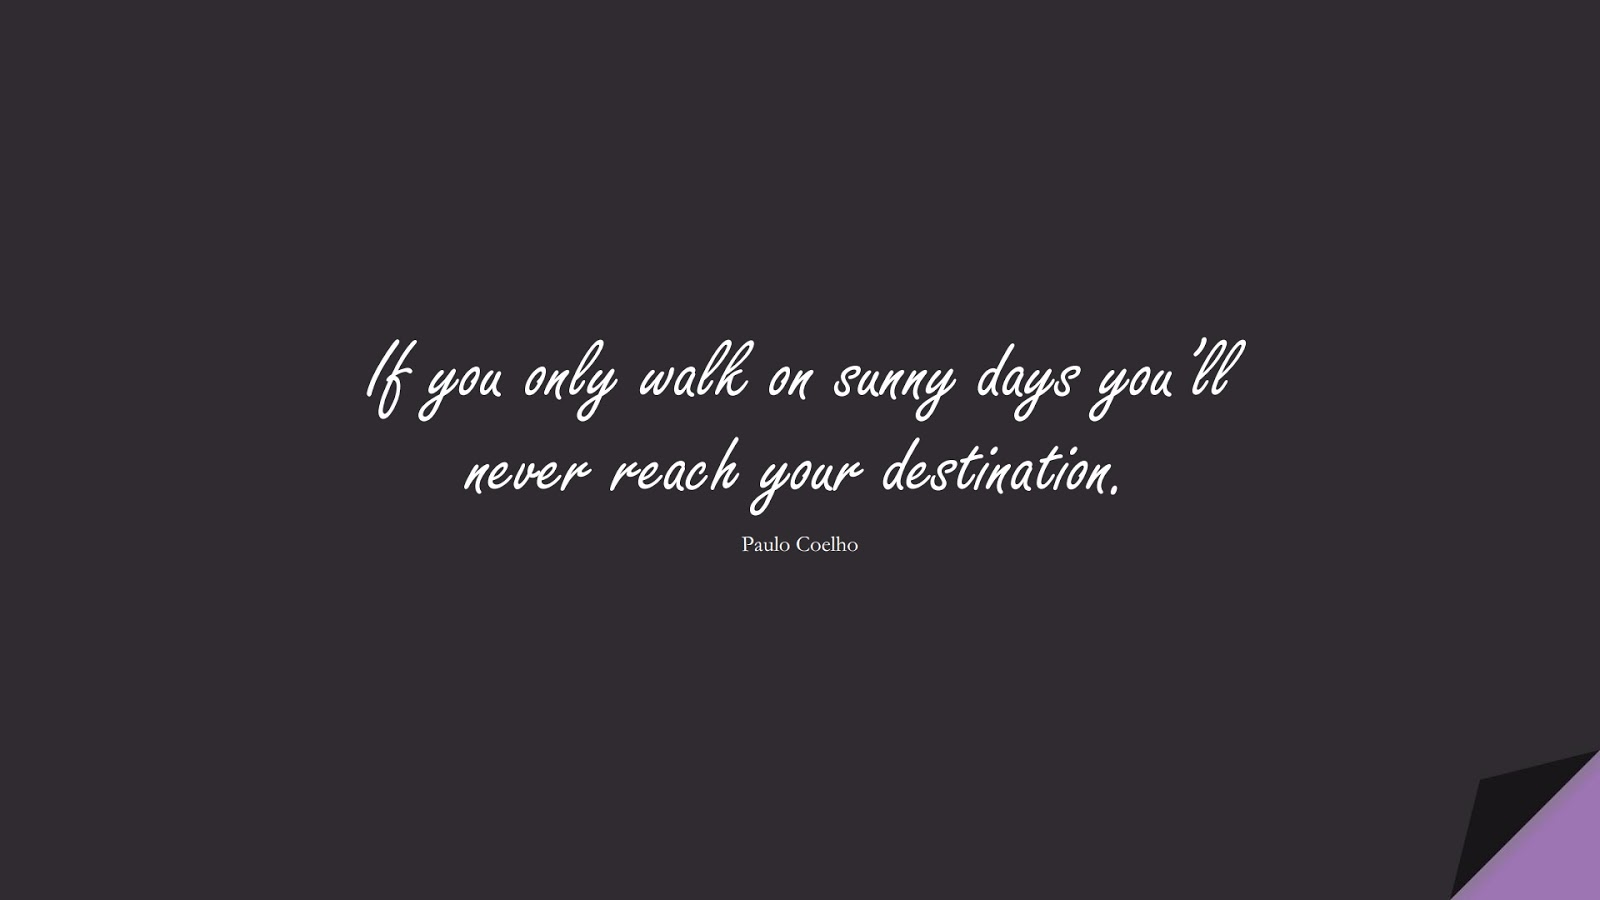 If you only walk on sunny days you'll never reach your destination. (Paulo Coelho);  #NeverGiveUpQuotes